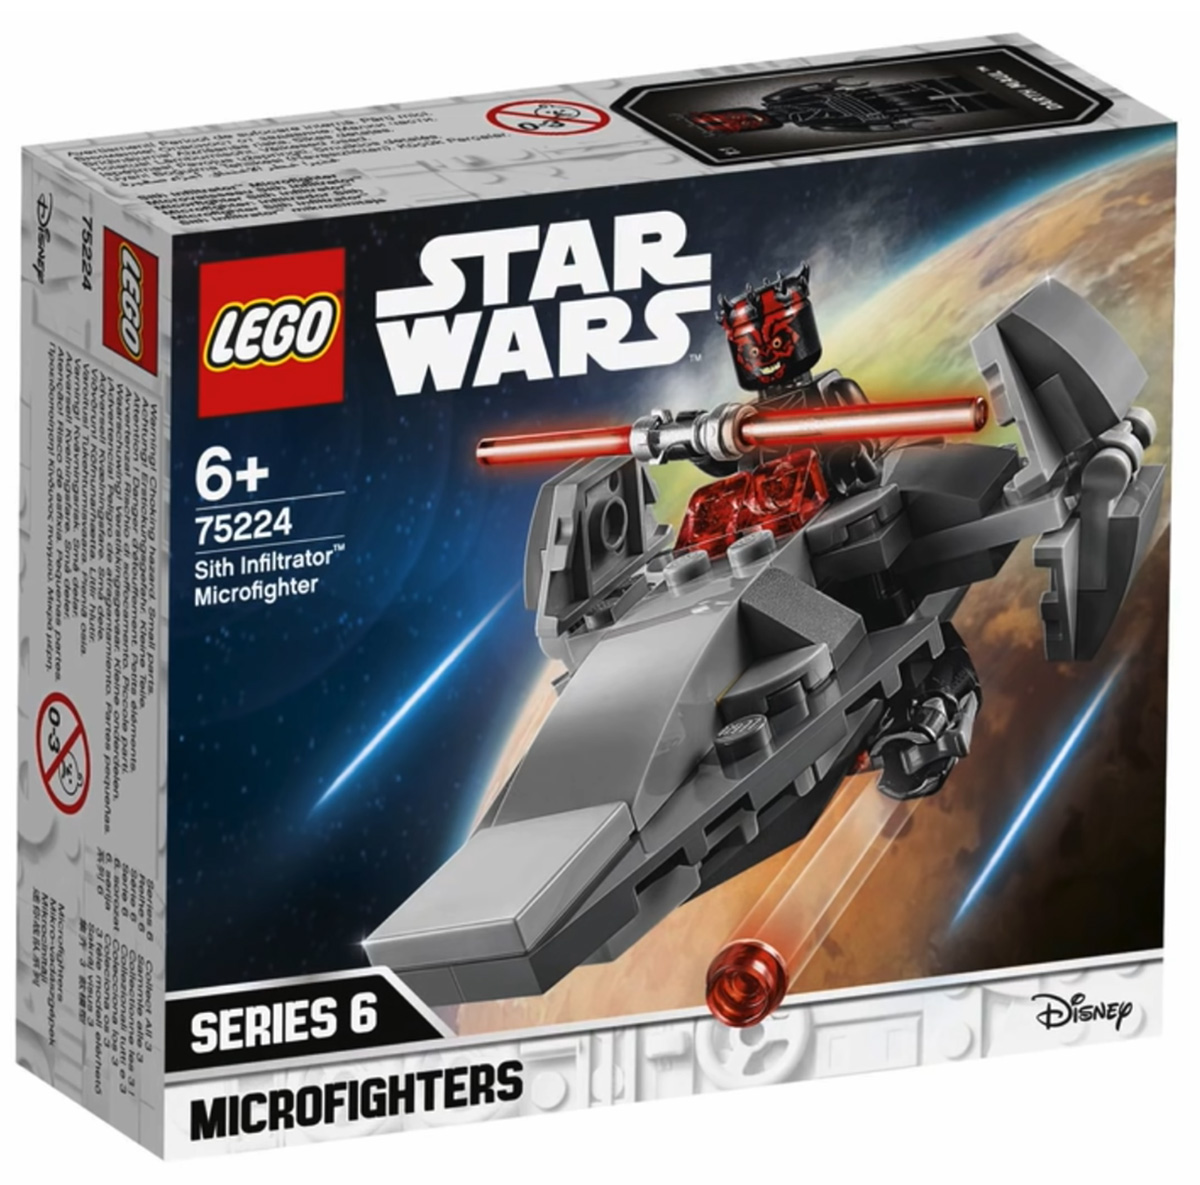 Lego Star Wars 2019 028 Outer Rim News